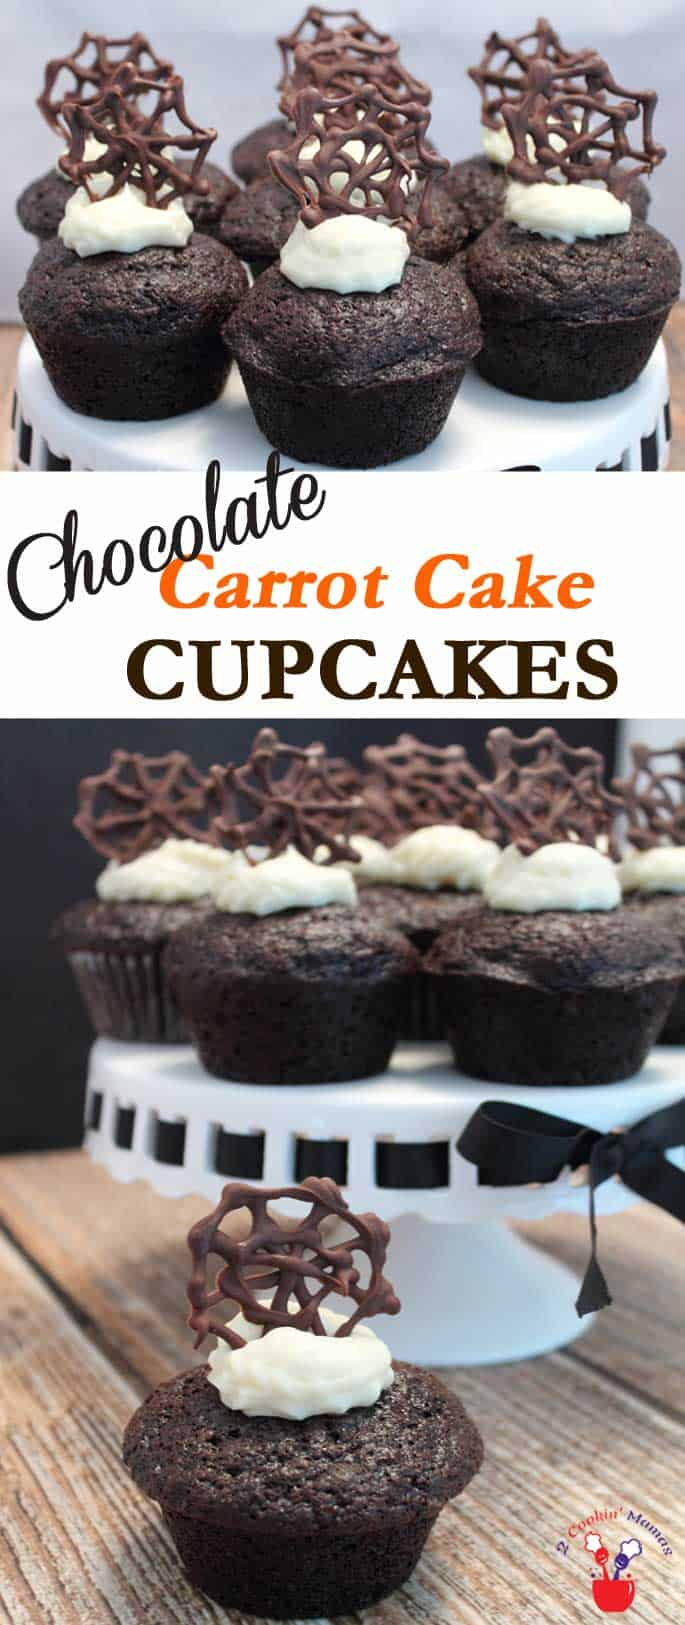 Chocolate Carrot Cupcakes | 2 Cookin Mamas These chocolate carrot cupcakes are a step up from carrot cake & great any time of the year but with our chocolate spider web they're perfect for Halloween. #recipe #dessert #cupcakes #chocolate